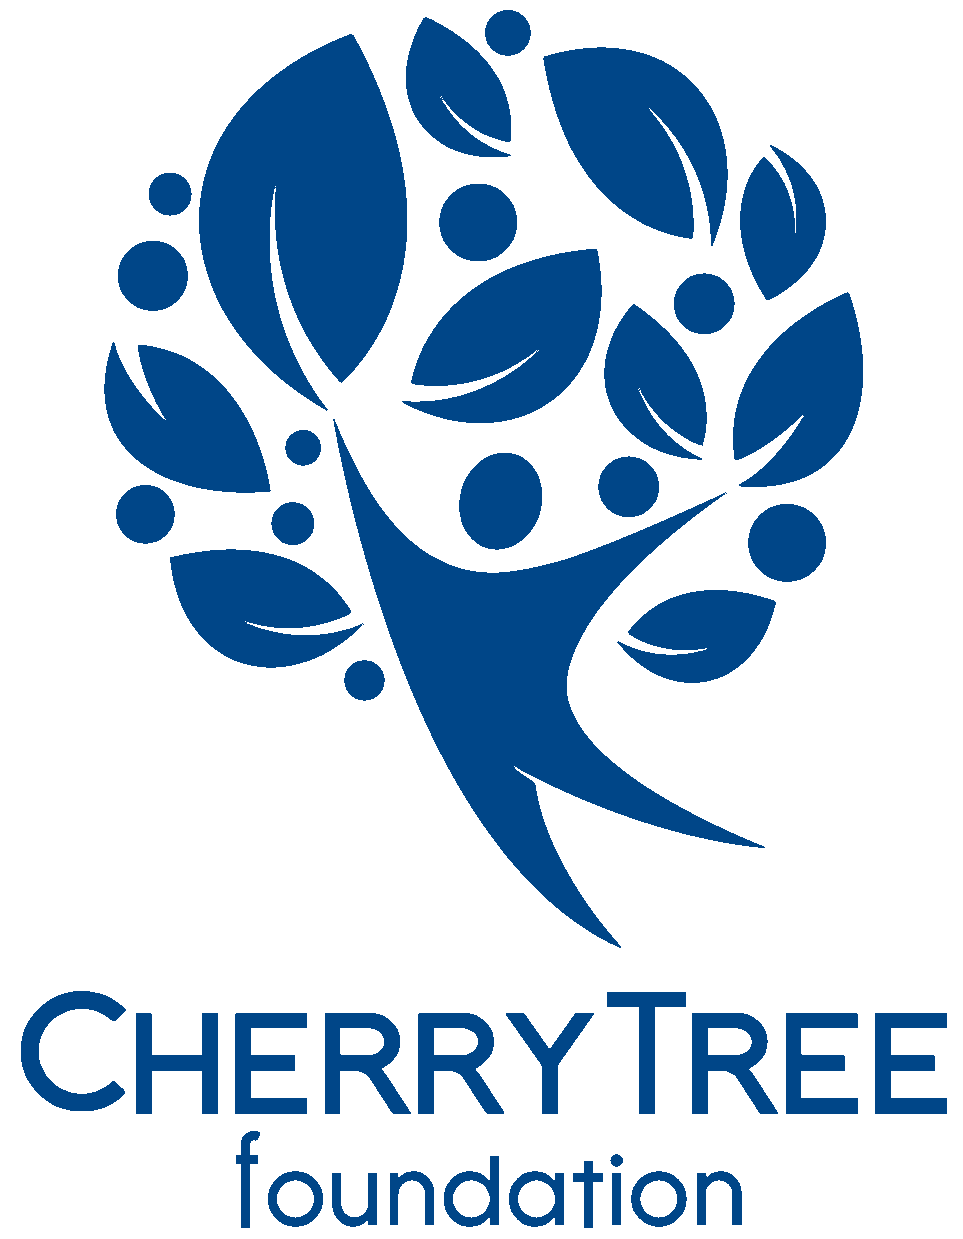 CherryTree Foundation logo of an illustrated figure and a tree